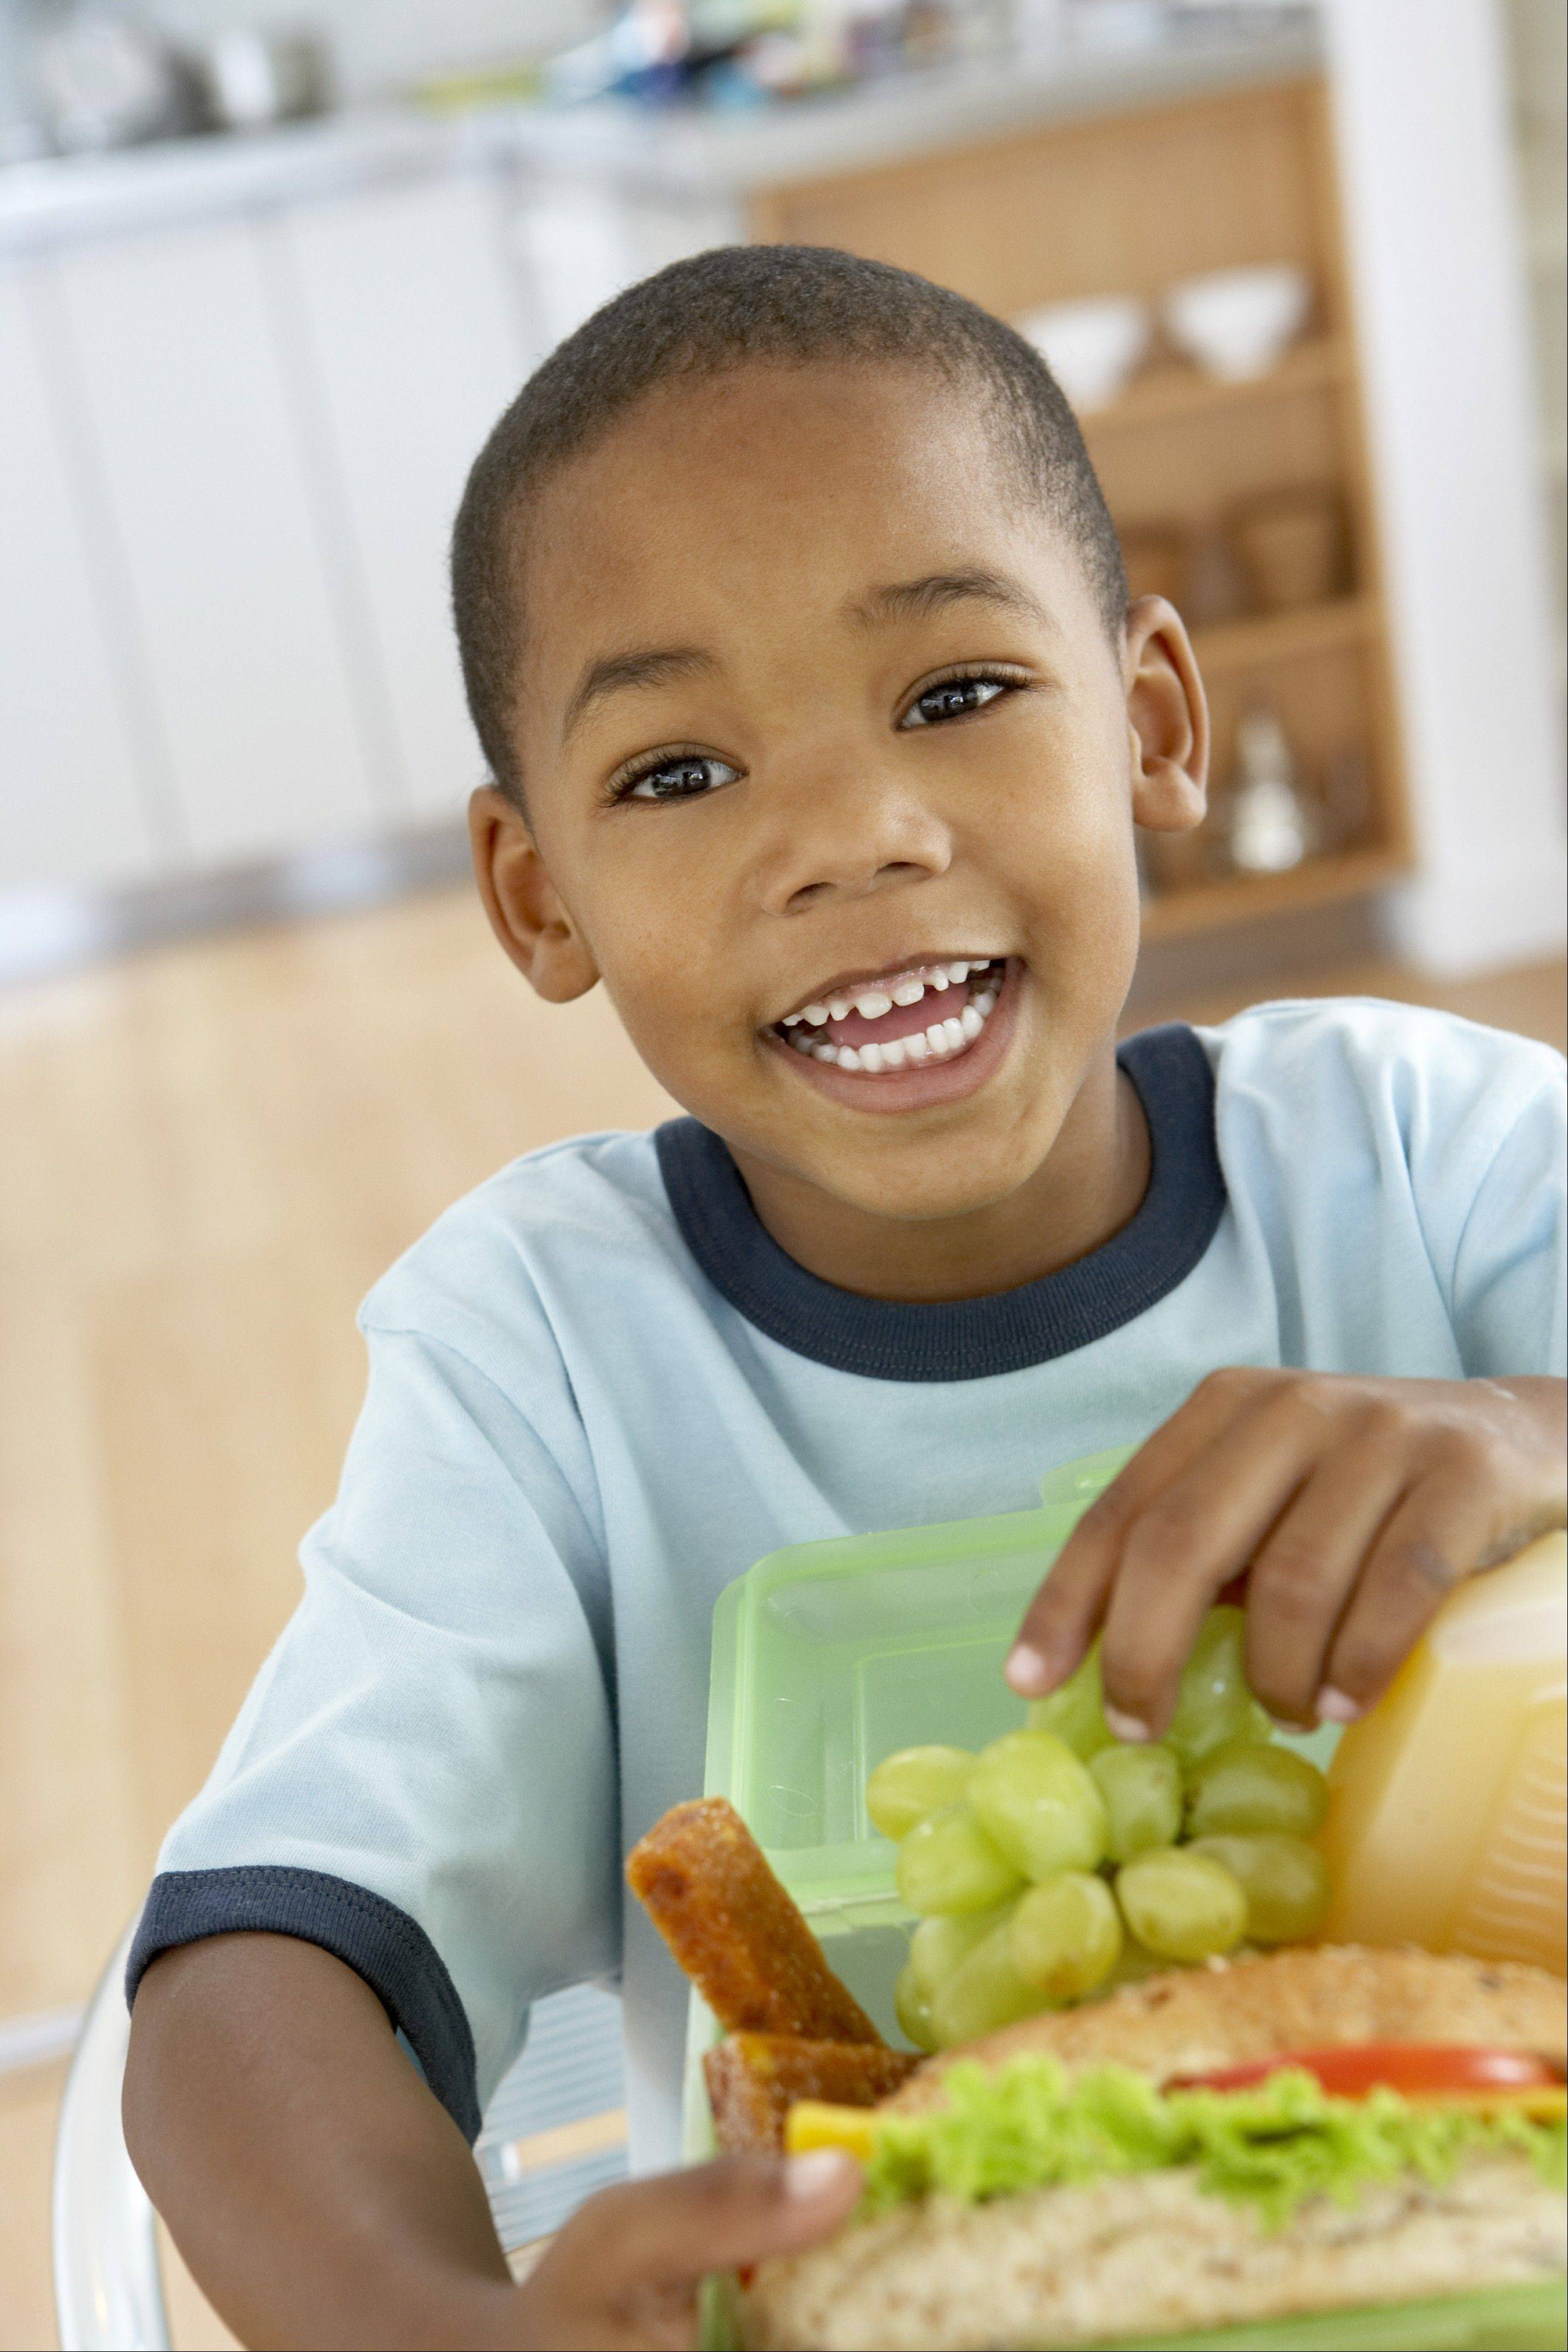 Children who help pack their own lunches may be more likely to eat them when they get to school.